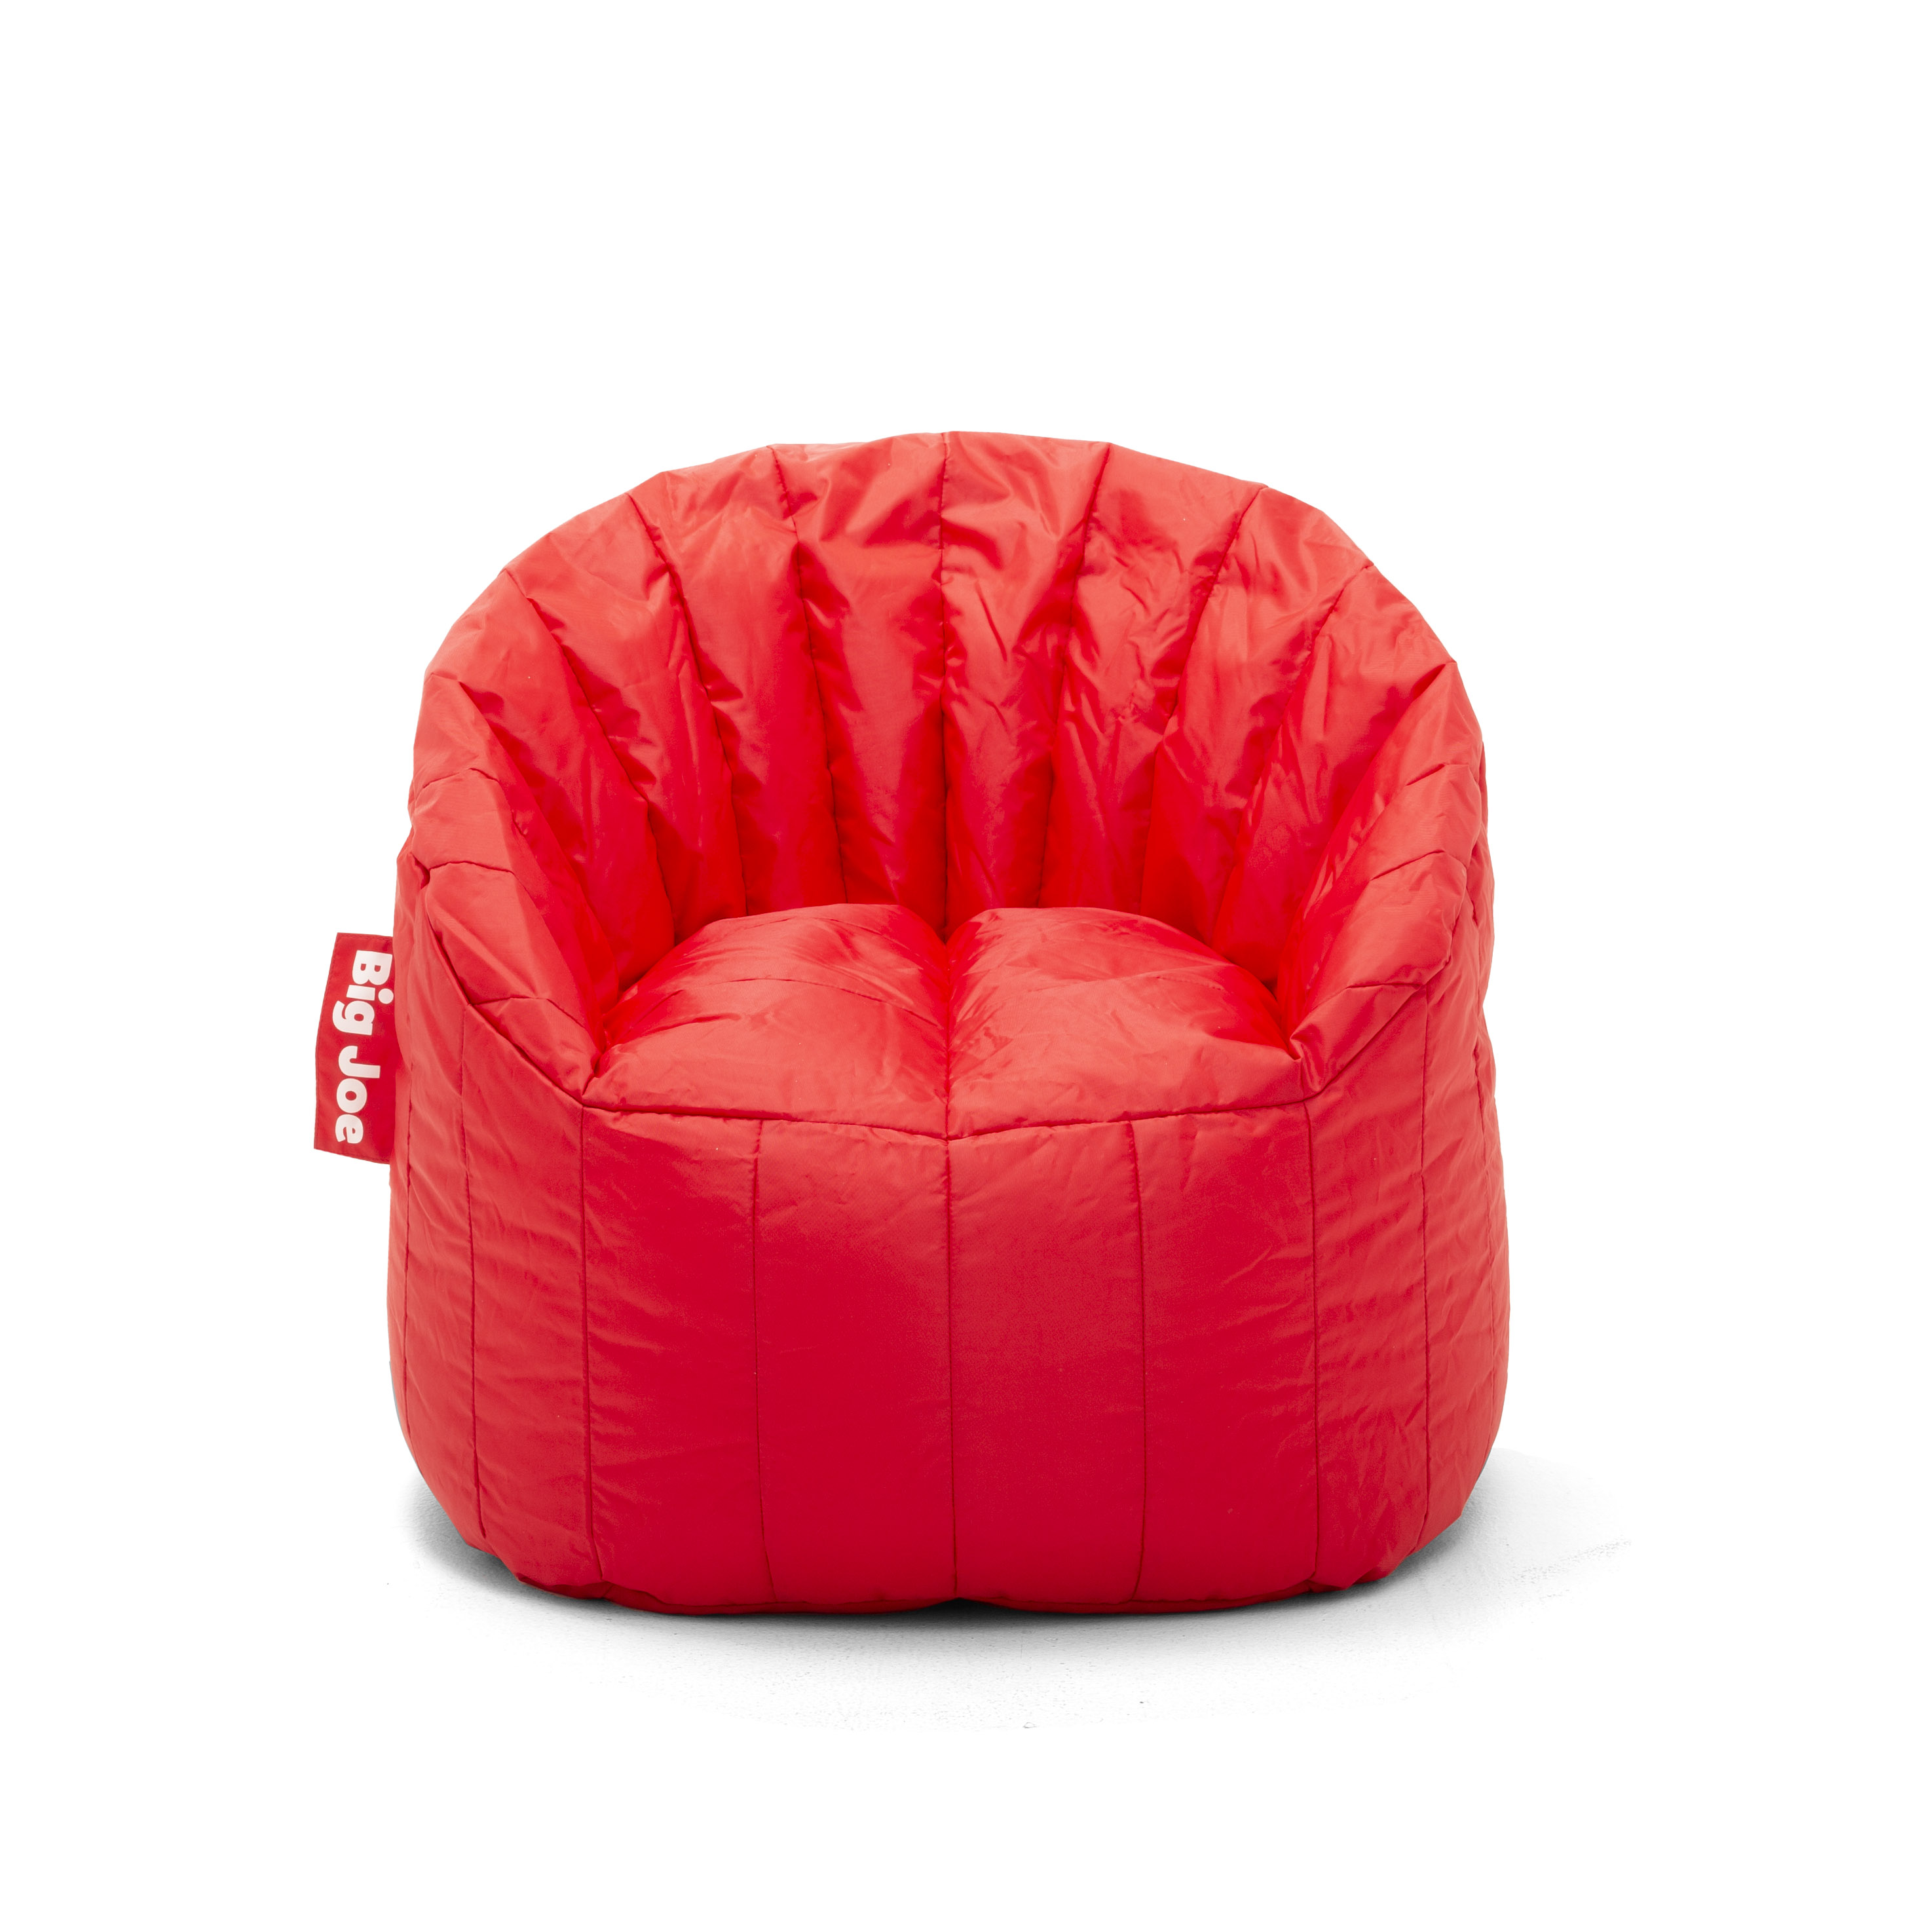 Basketball Bean Bag Chair Big Joe Lumin Bean Bag Chair Available In Multiple Colors